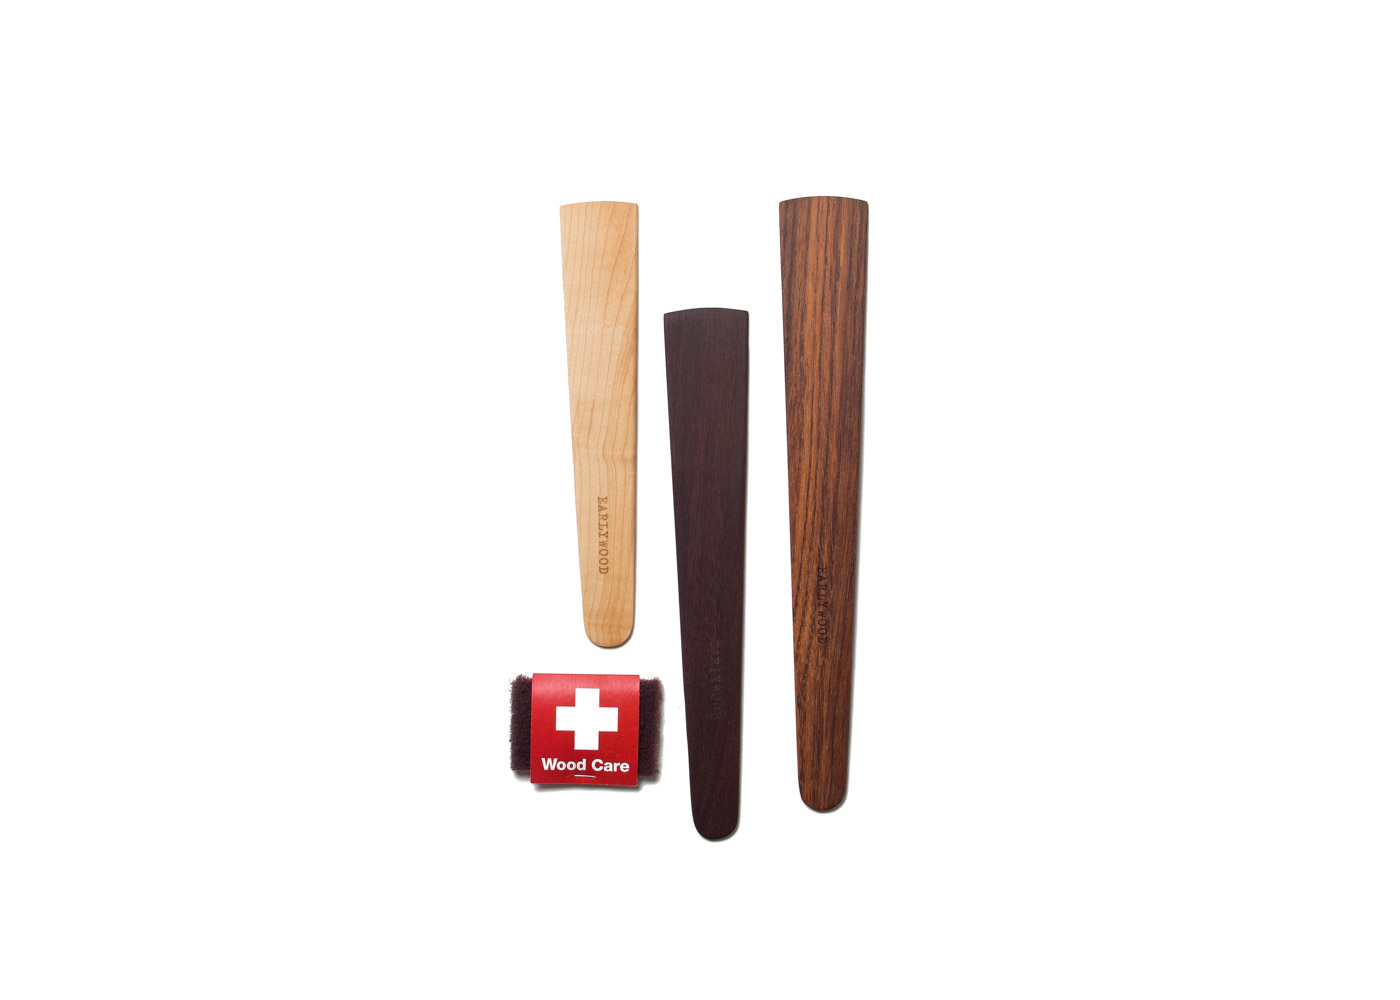 Earlywood's 'trifecta' of wooden spatulas.